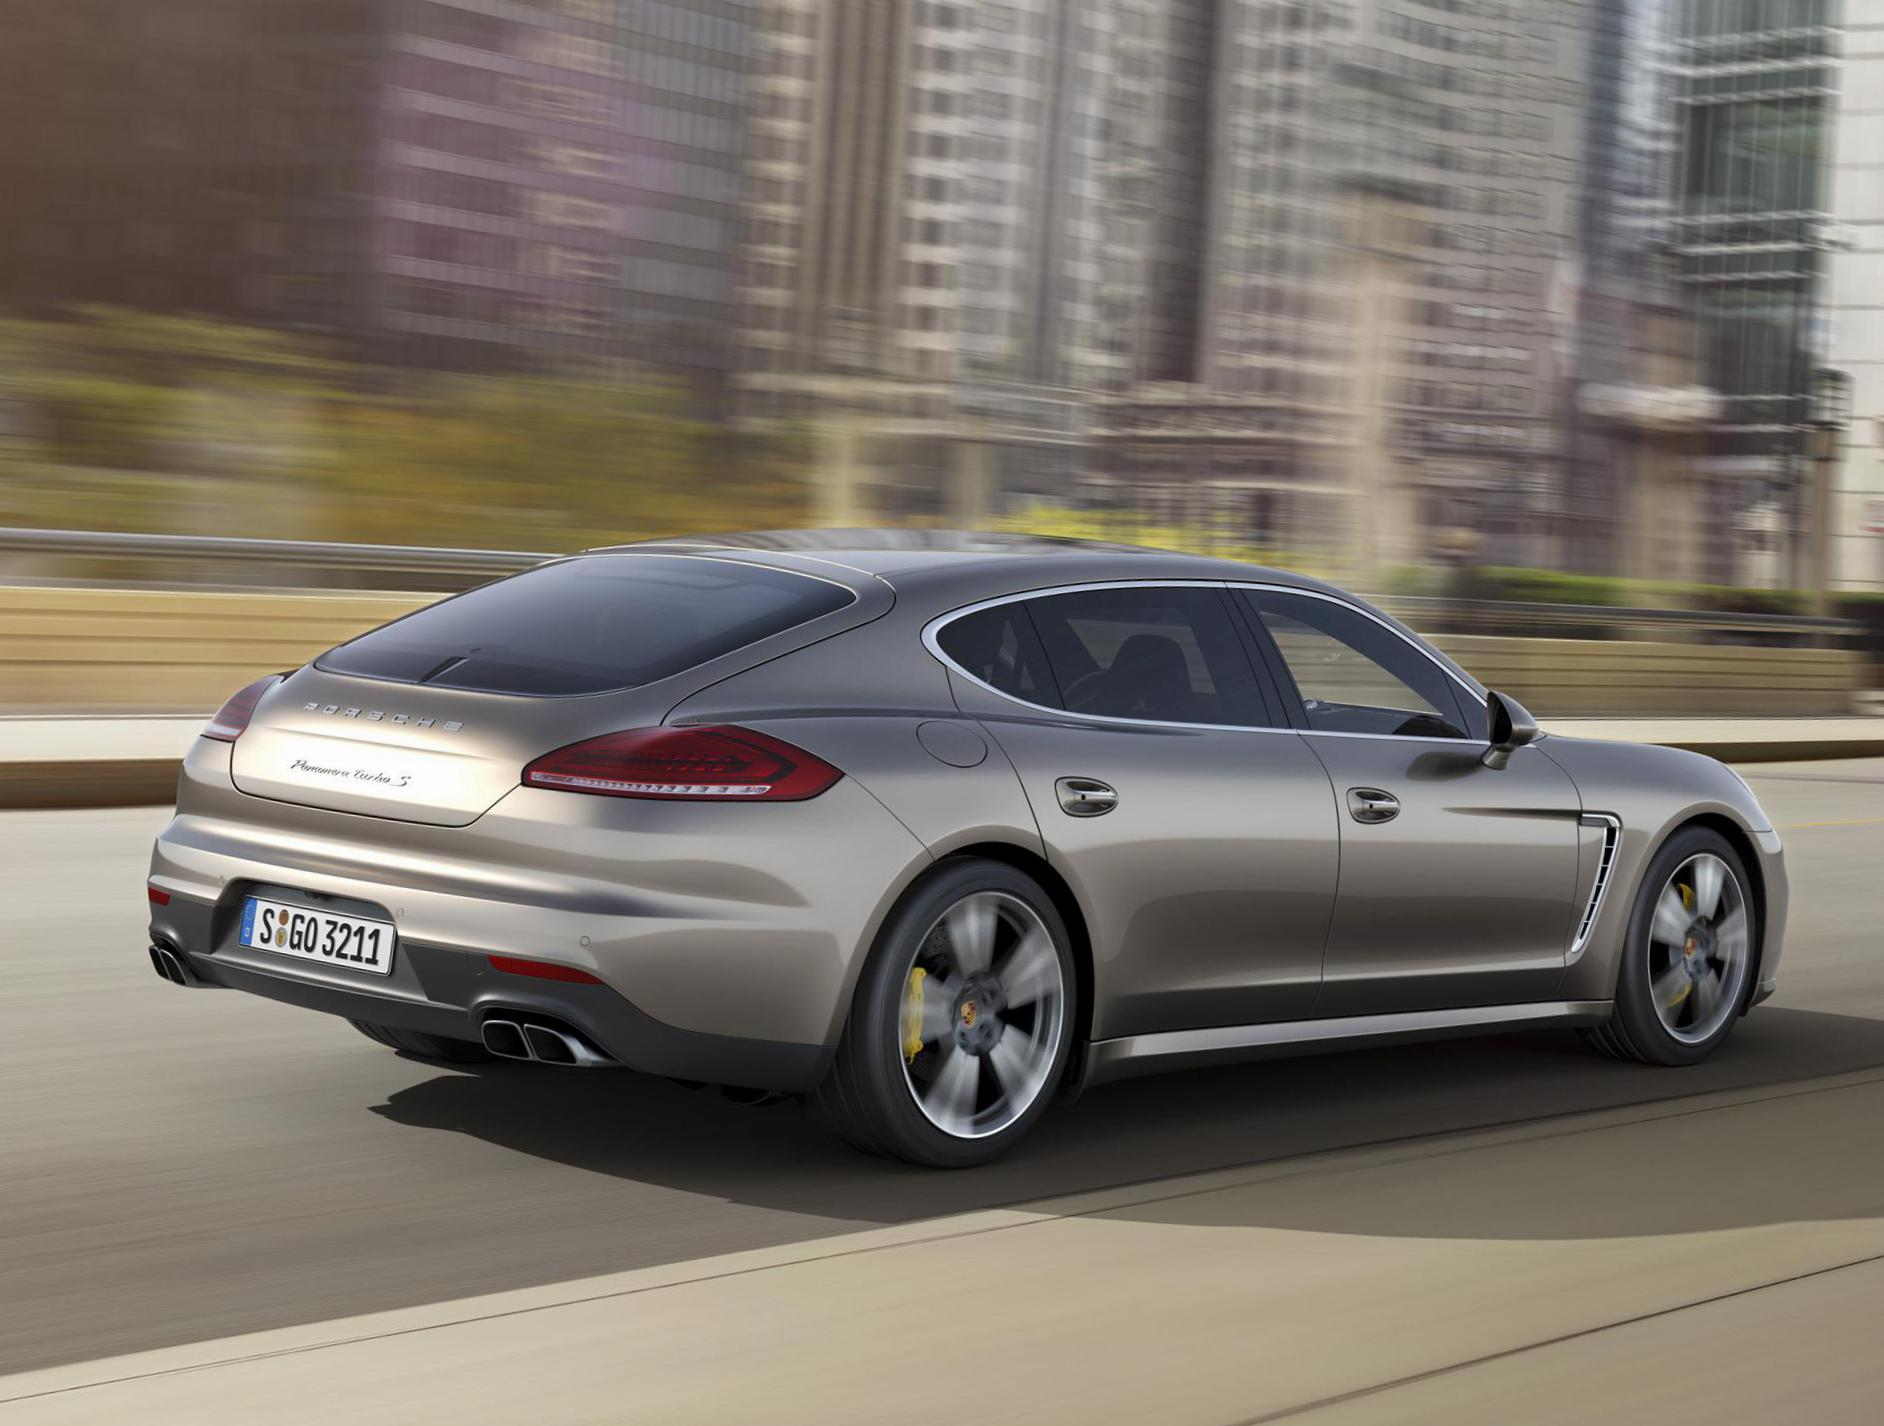 Porsche Panamera Lease >> Porsche Panamera Turbo Photos And Specs Photo Panamera Turbo